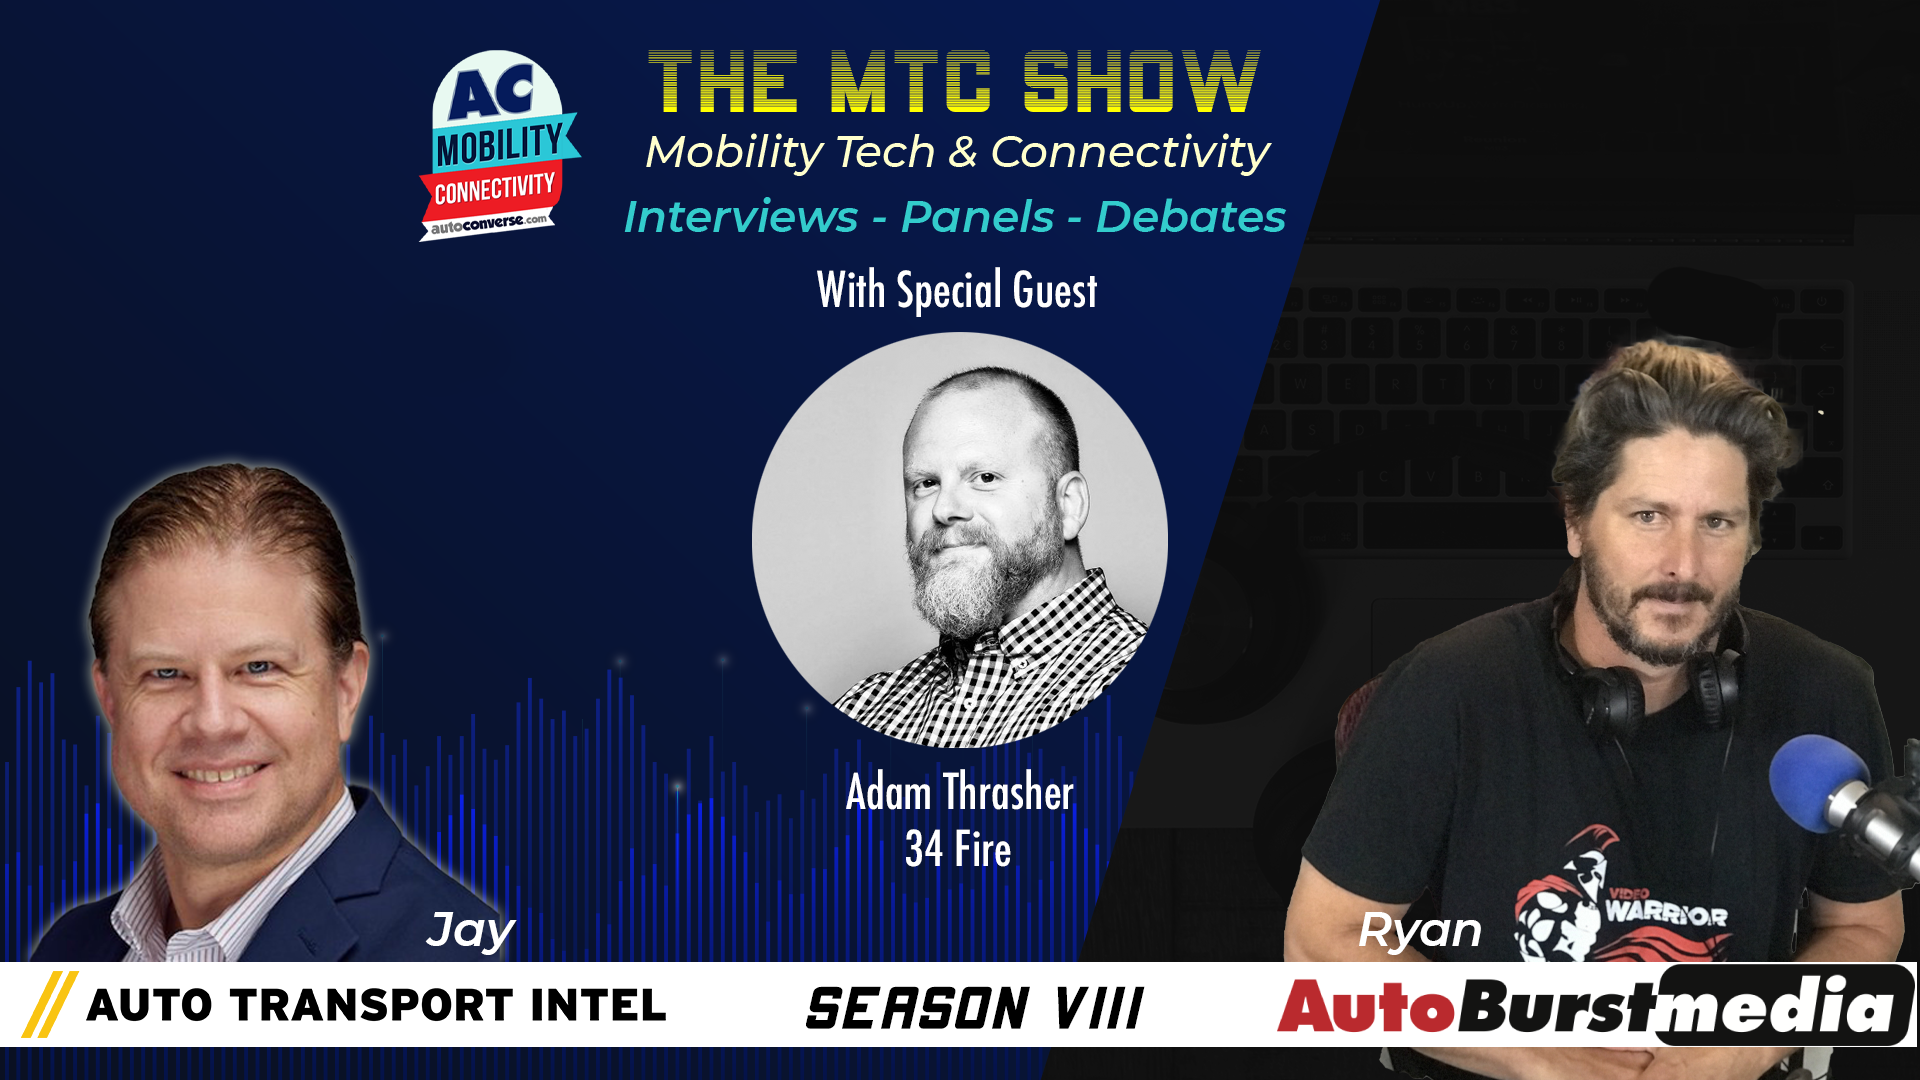 LIVE WED SEP 9. Vehicle Sales Up, Auto Show Dilemma, and Creating High-Engagement Video Content